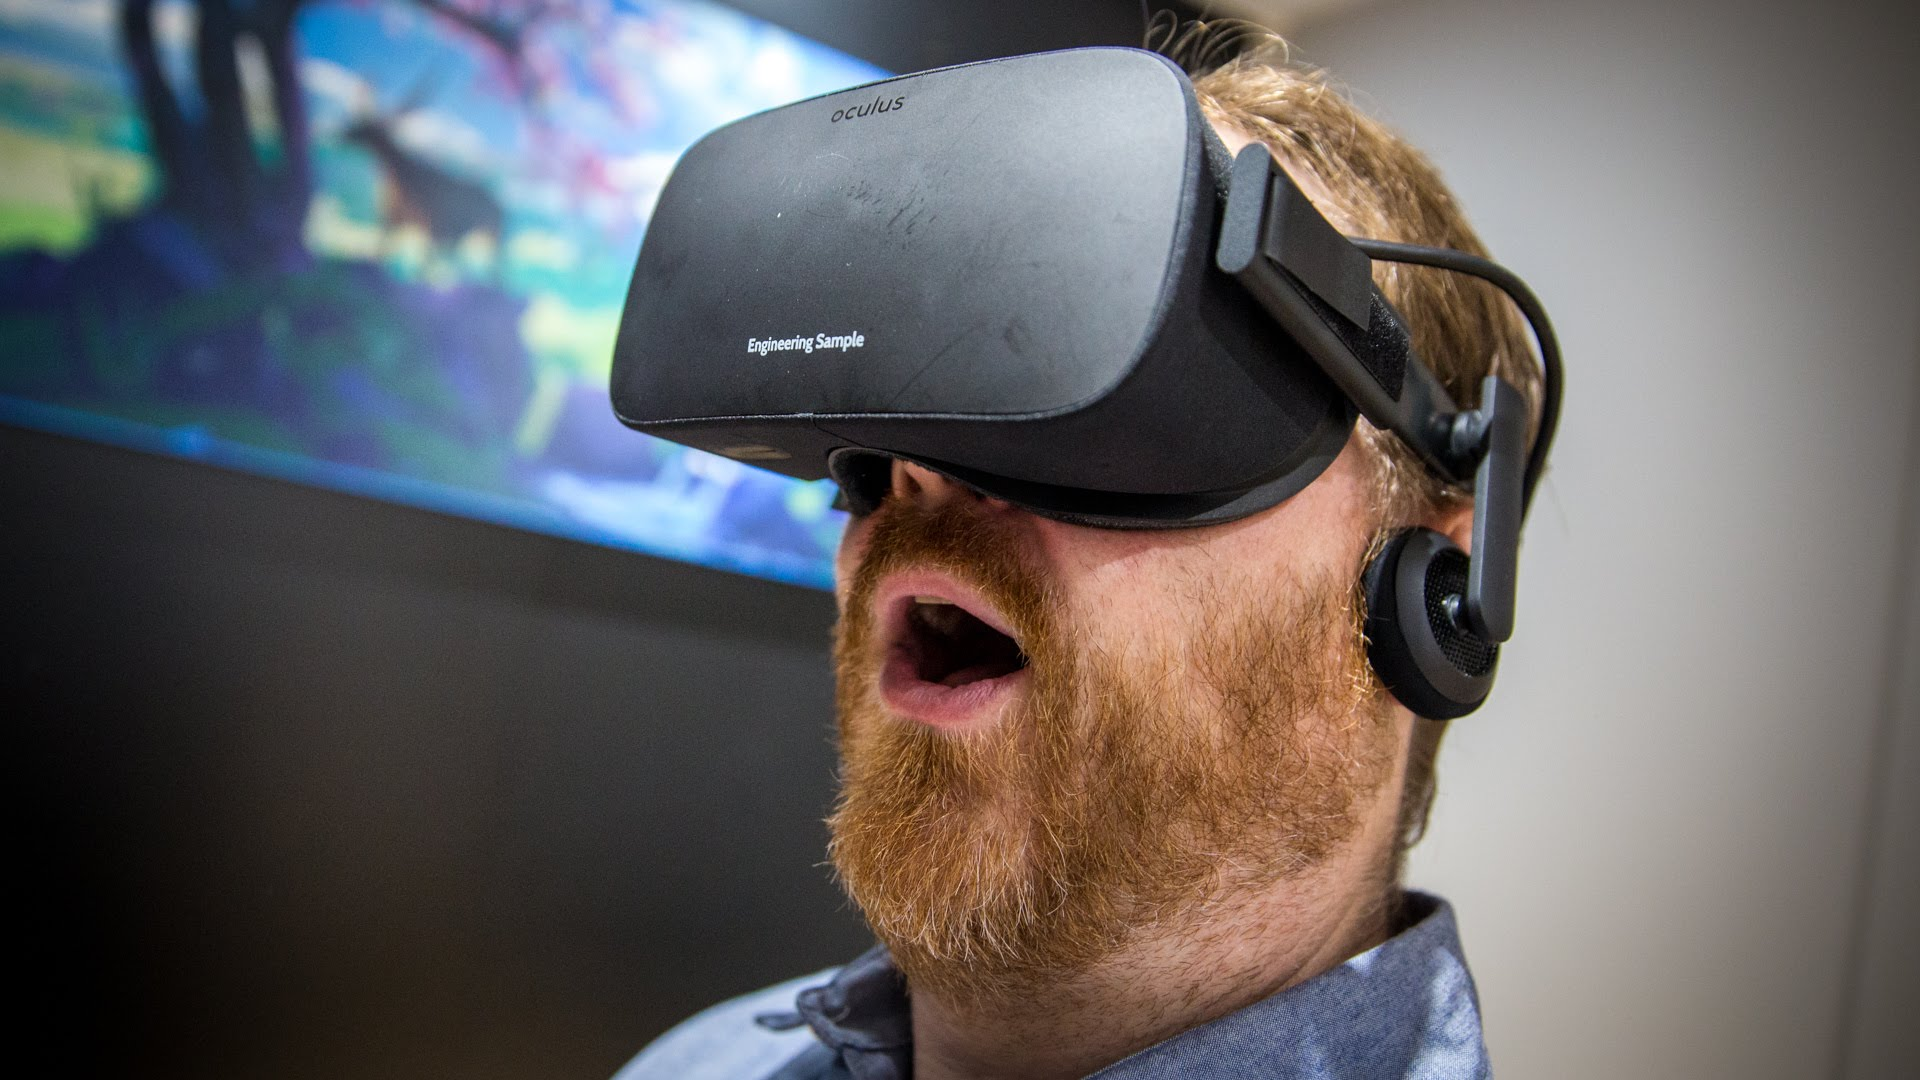 Oculus Rift ships, kicks off VR officially, so good luck affording one